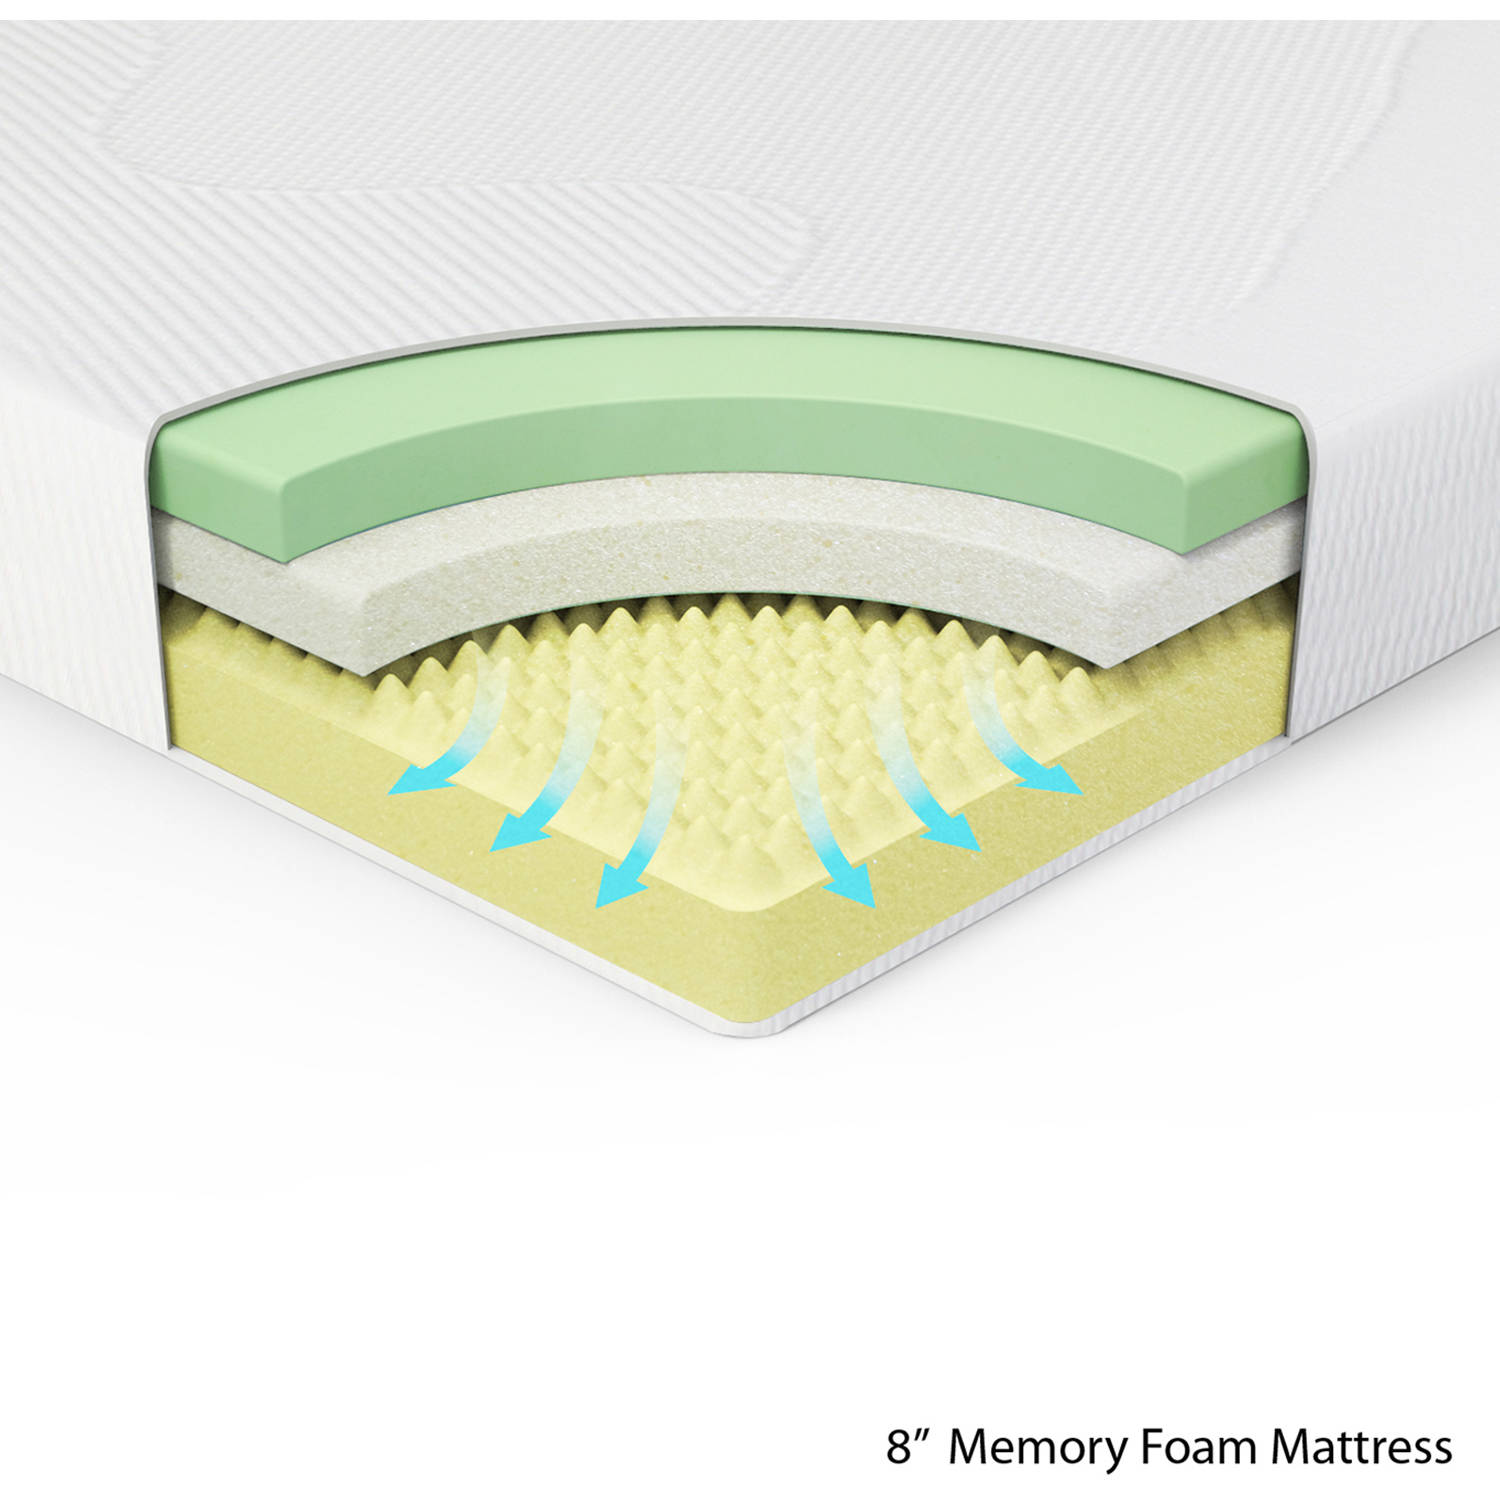 Spa sensations 8 memory foam mattress full size ebay Full size foam mattress